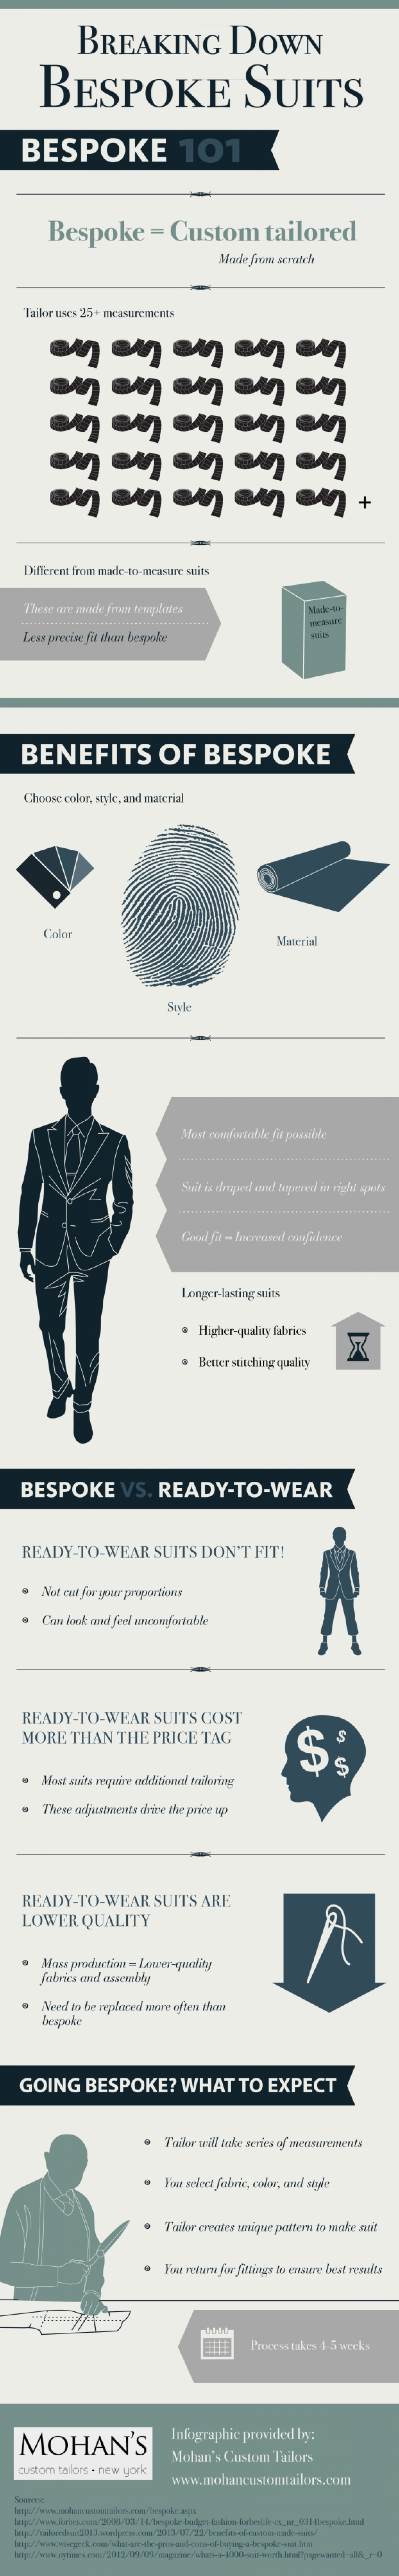 Breaking Down Bespoke Suits  Infographic